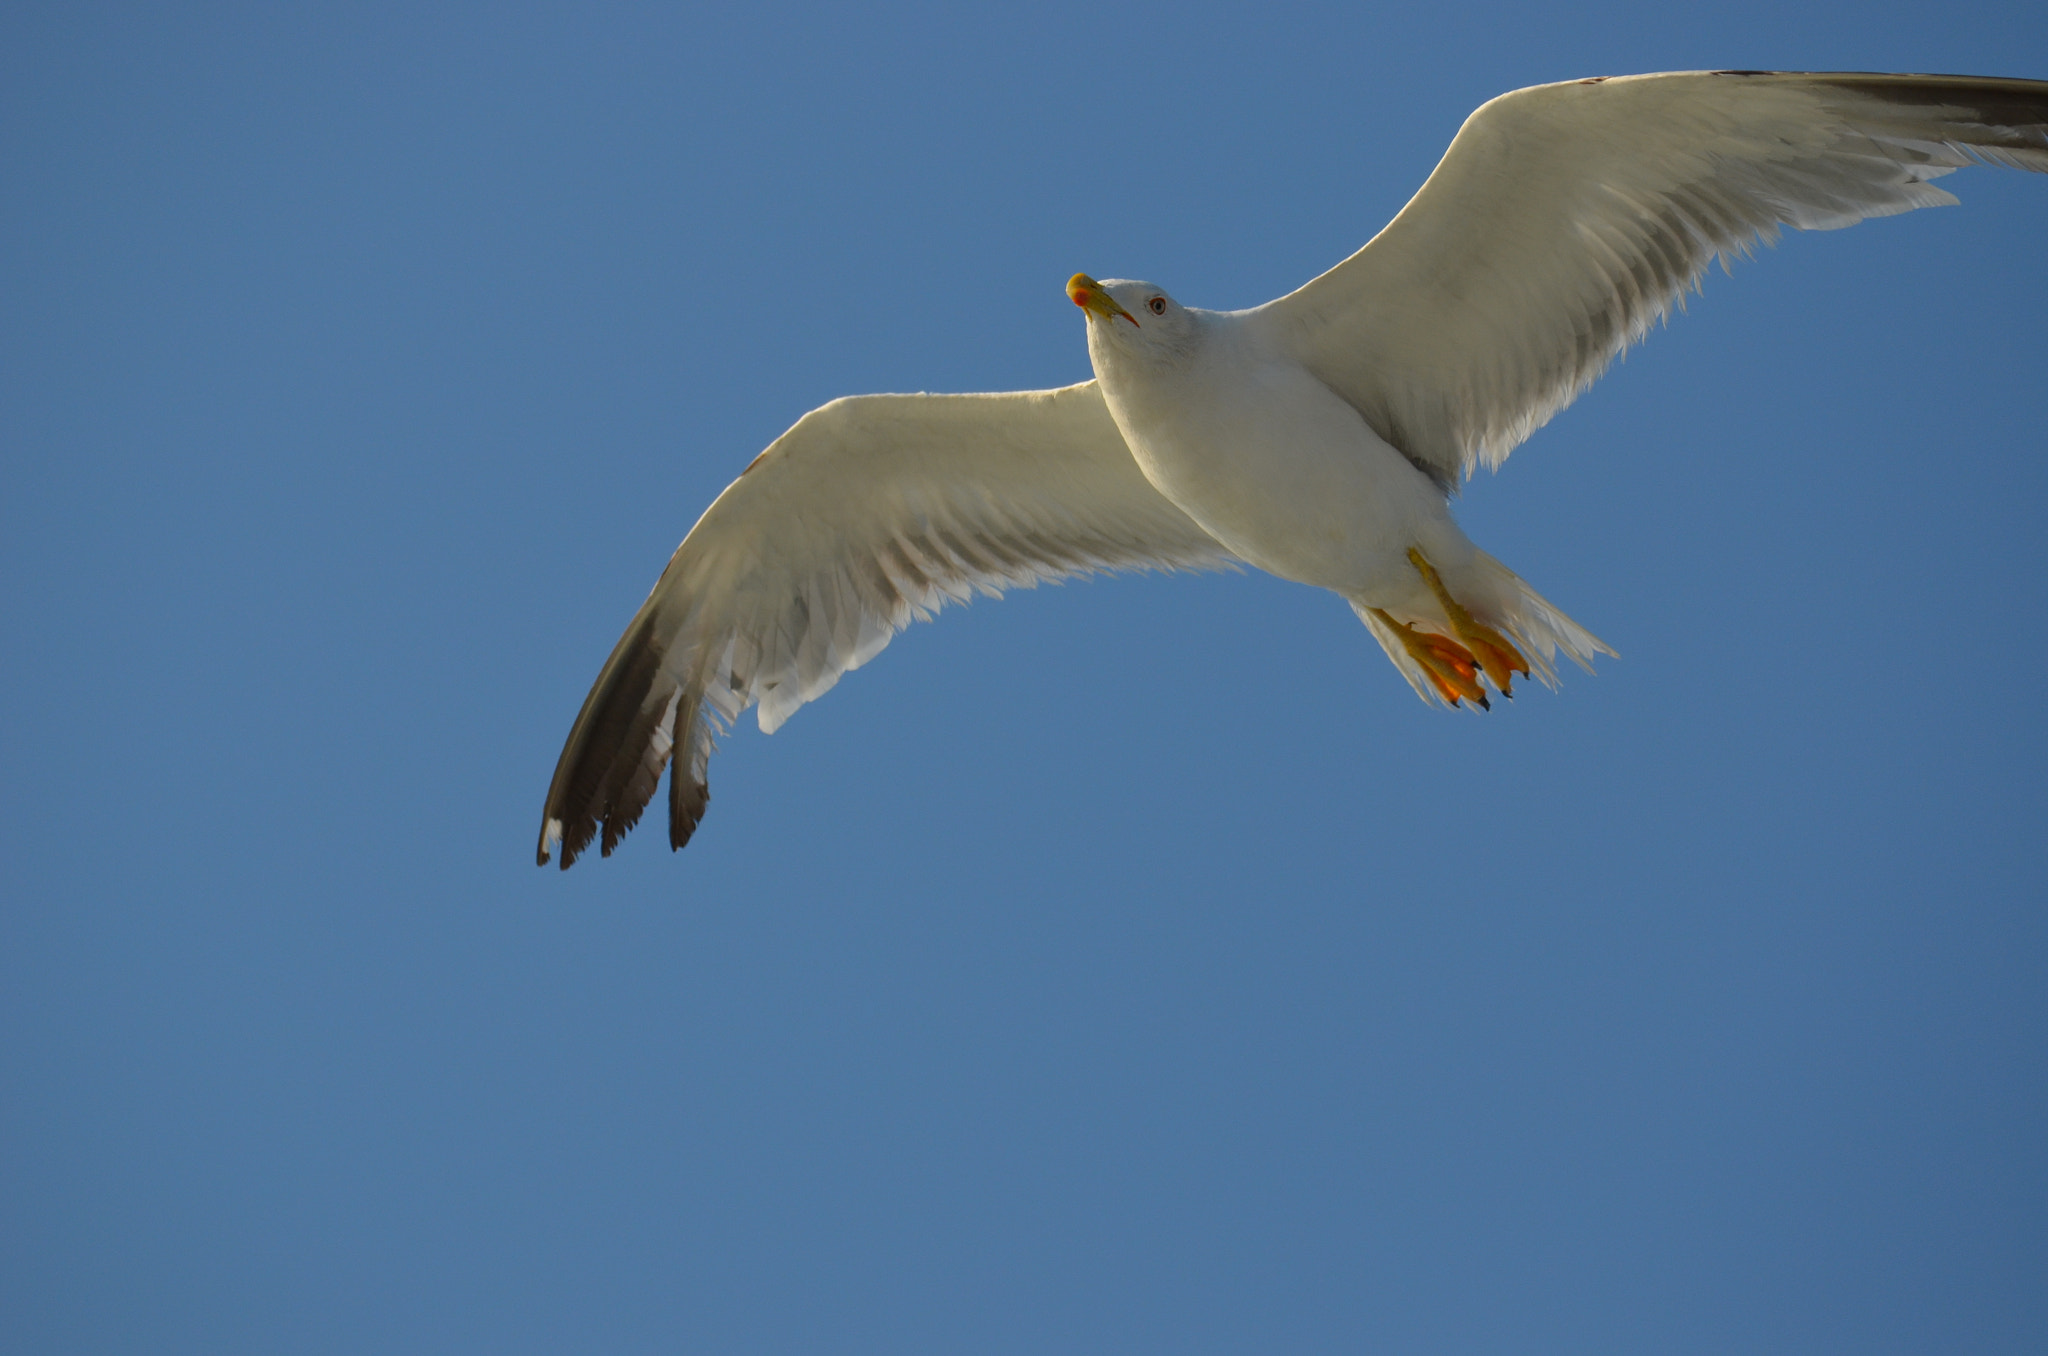 Photograph A seagull by Mehmet Ergin on 500px